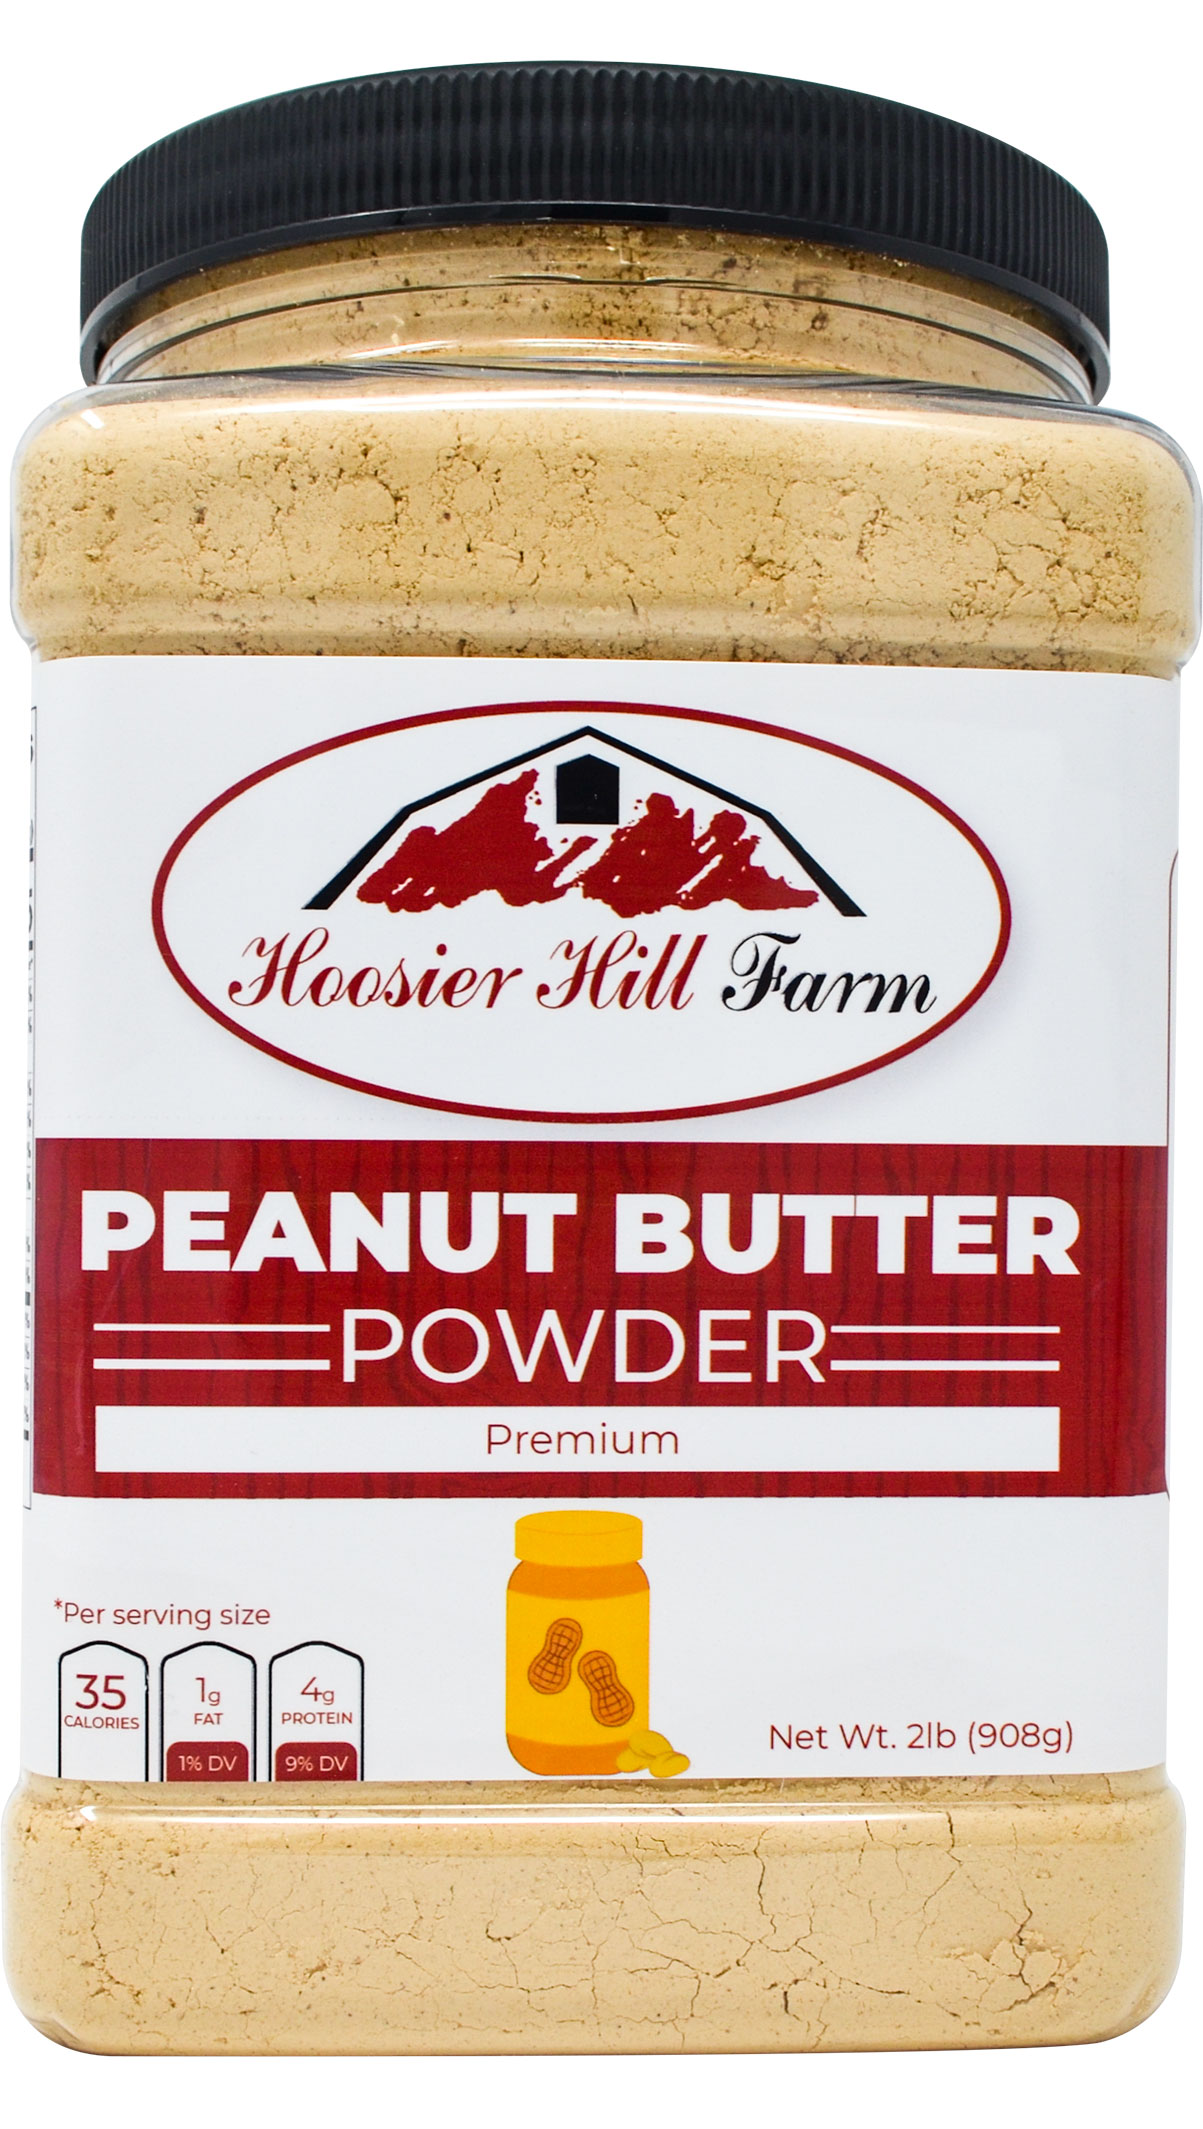 Hoosier Hill Farm Peanut Butter Powder 2 lbs